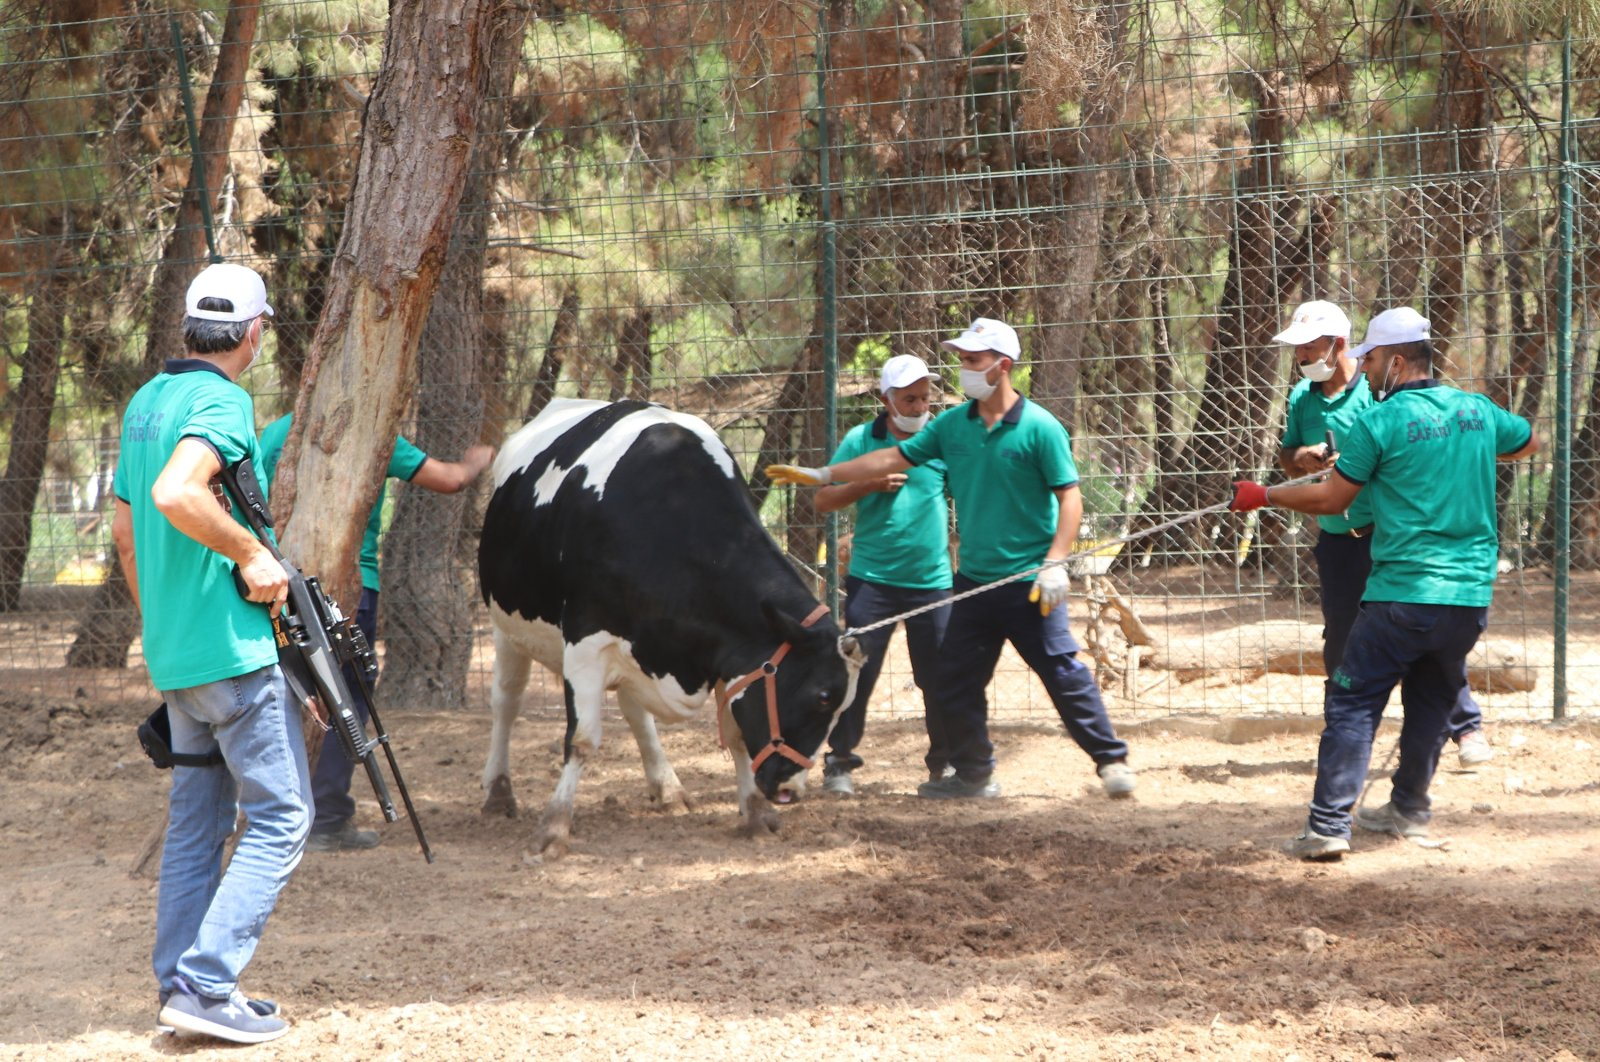 Animal catchers restrain a bull during a training session, in Gaziantep, southern Turkey, July 28, 2020. (DHA Photo)